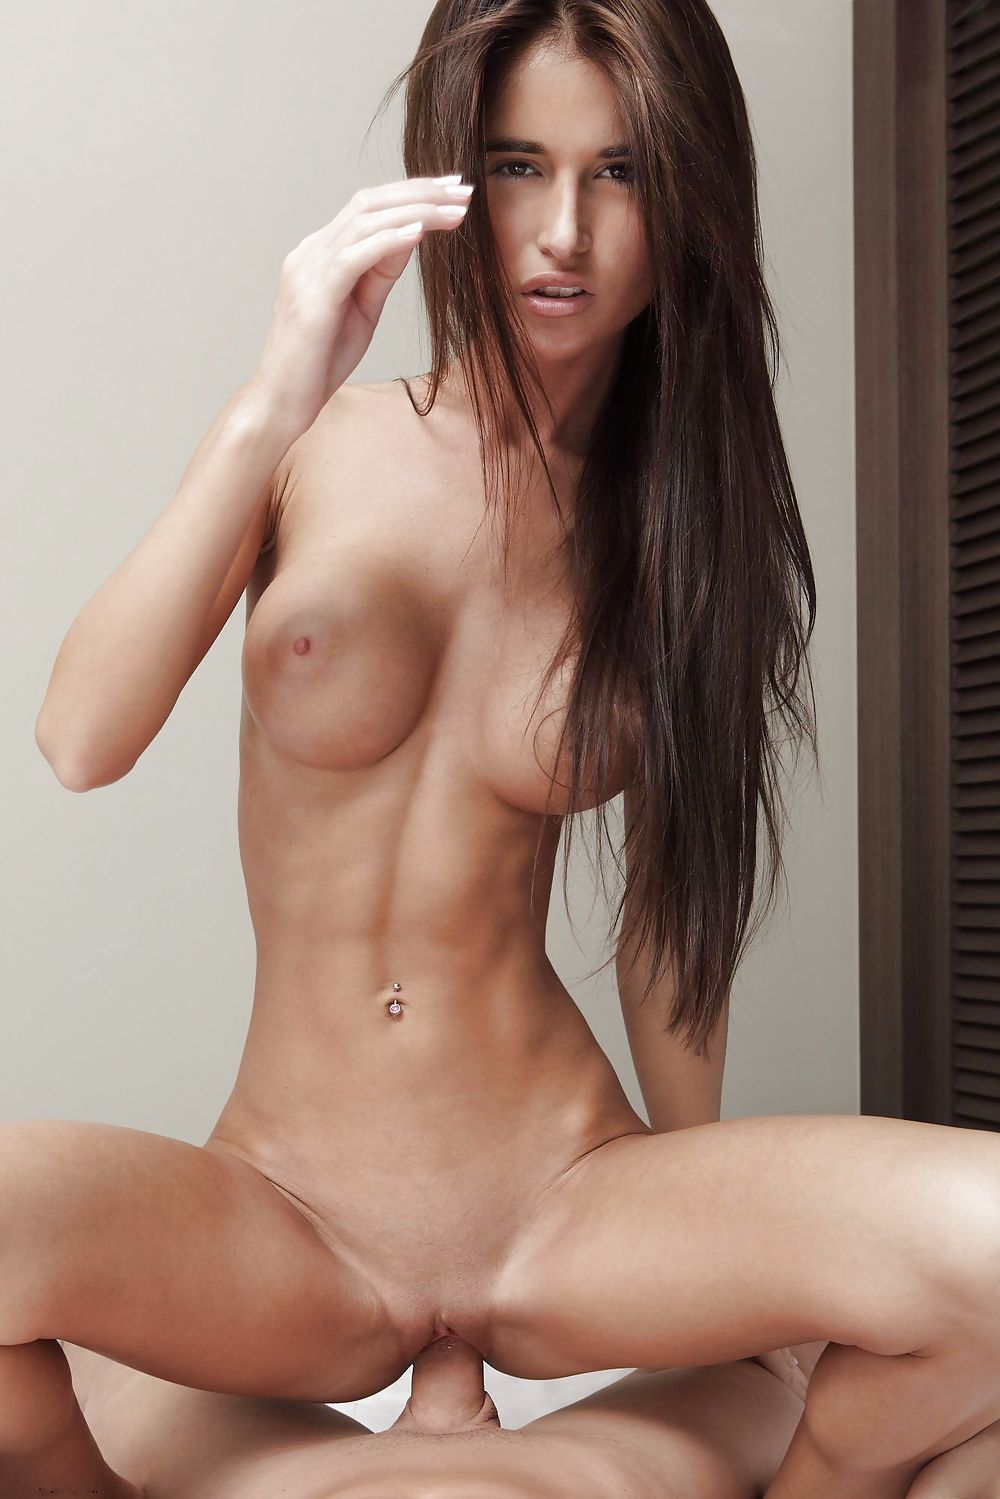 young-skinny-mexican-nude-girls-threesome-party-photos